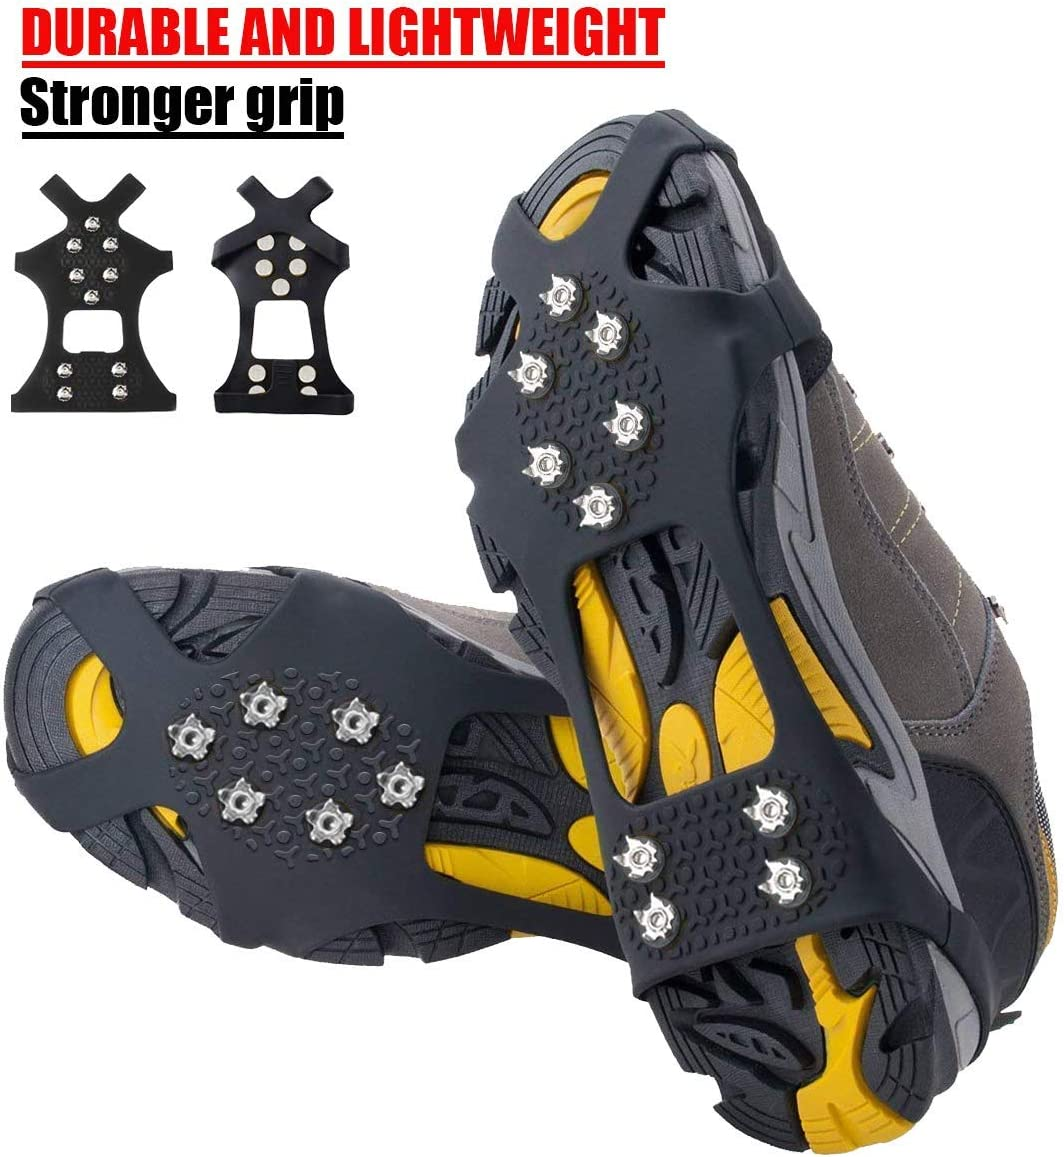 Pozlle Ice Grips,Updated VersionIce & Snow Grips Cleat Over Shoe/Boot,Traction Cleat Rubber Spikes Anti Slip 10 Steel Studs Crampons Slip-on Stretch Footwear